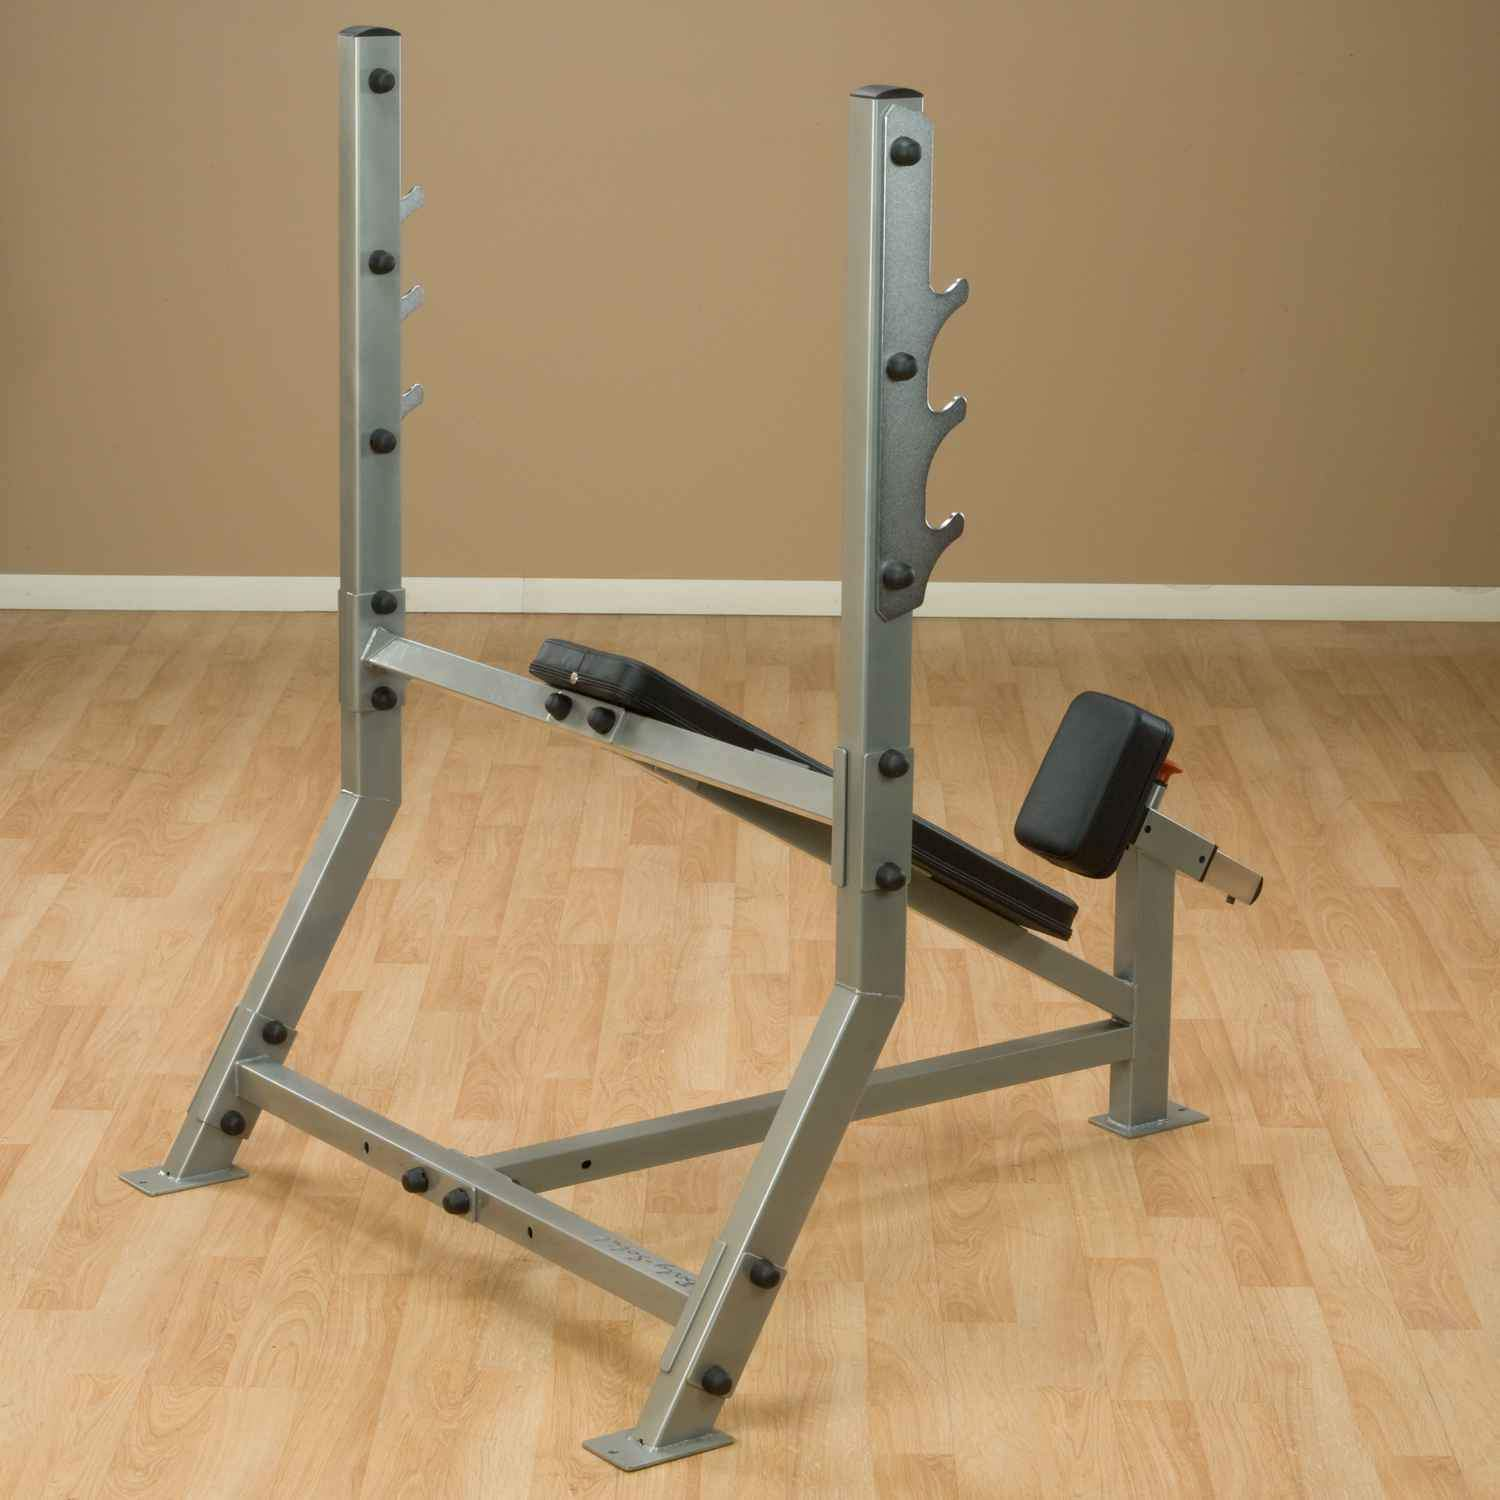 Body-Solid Incline Olympic Bench (SIB359G) bench Body-Solid